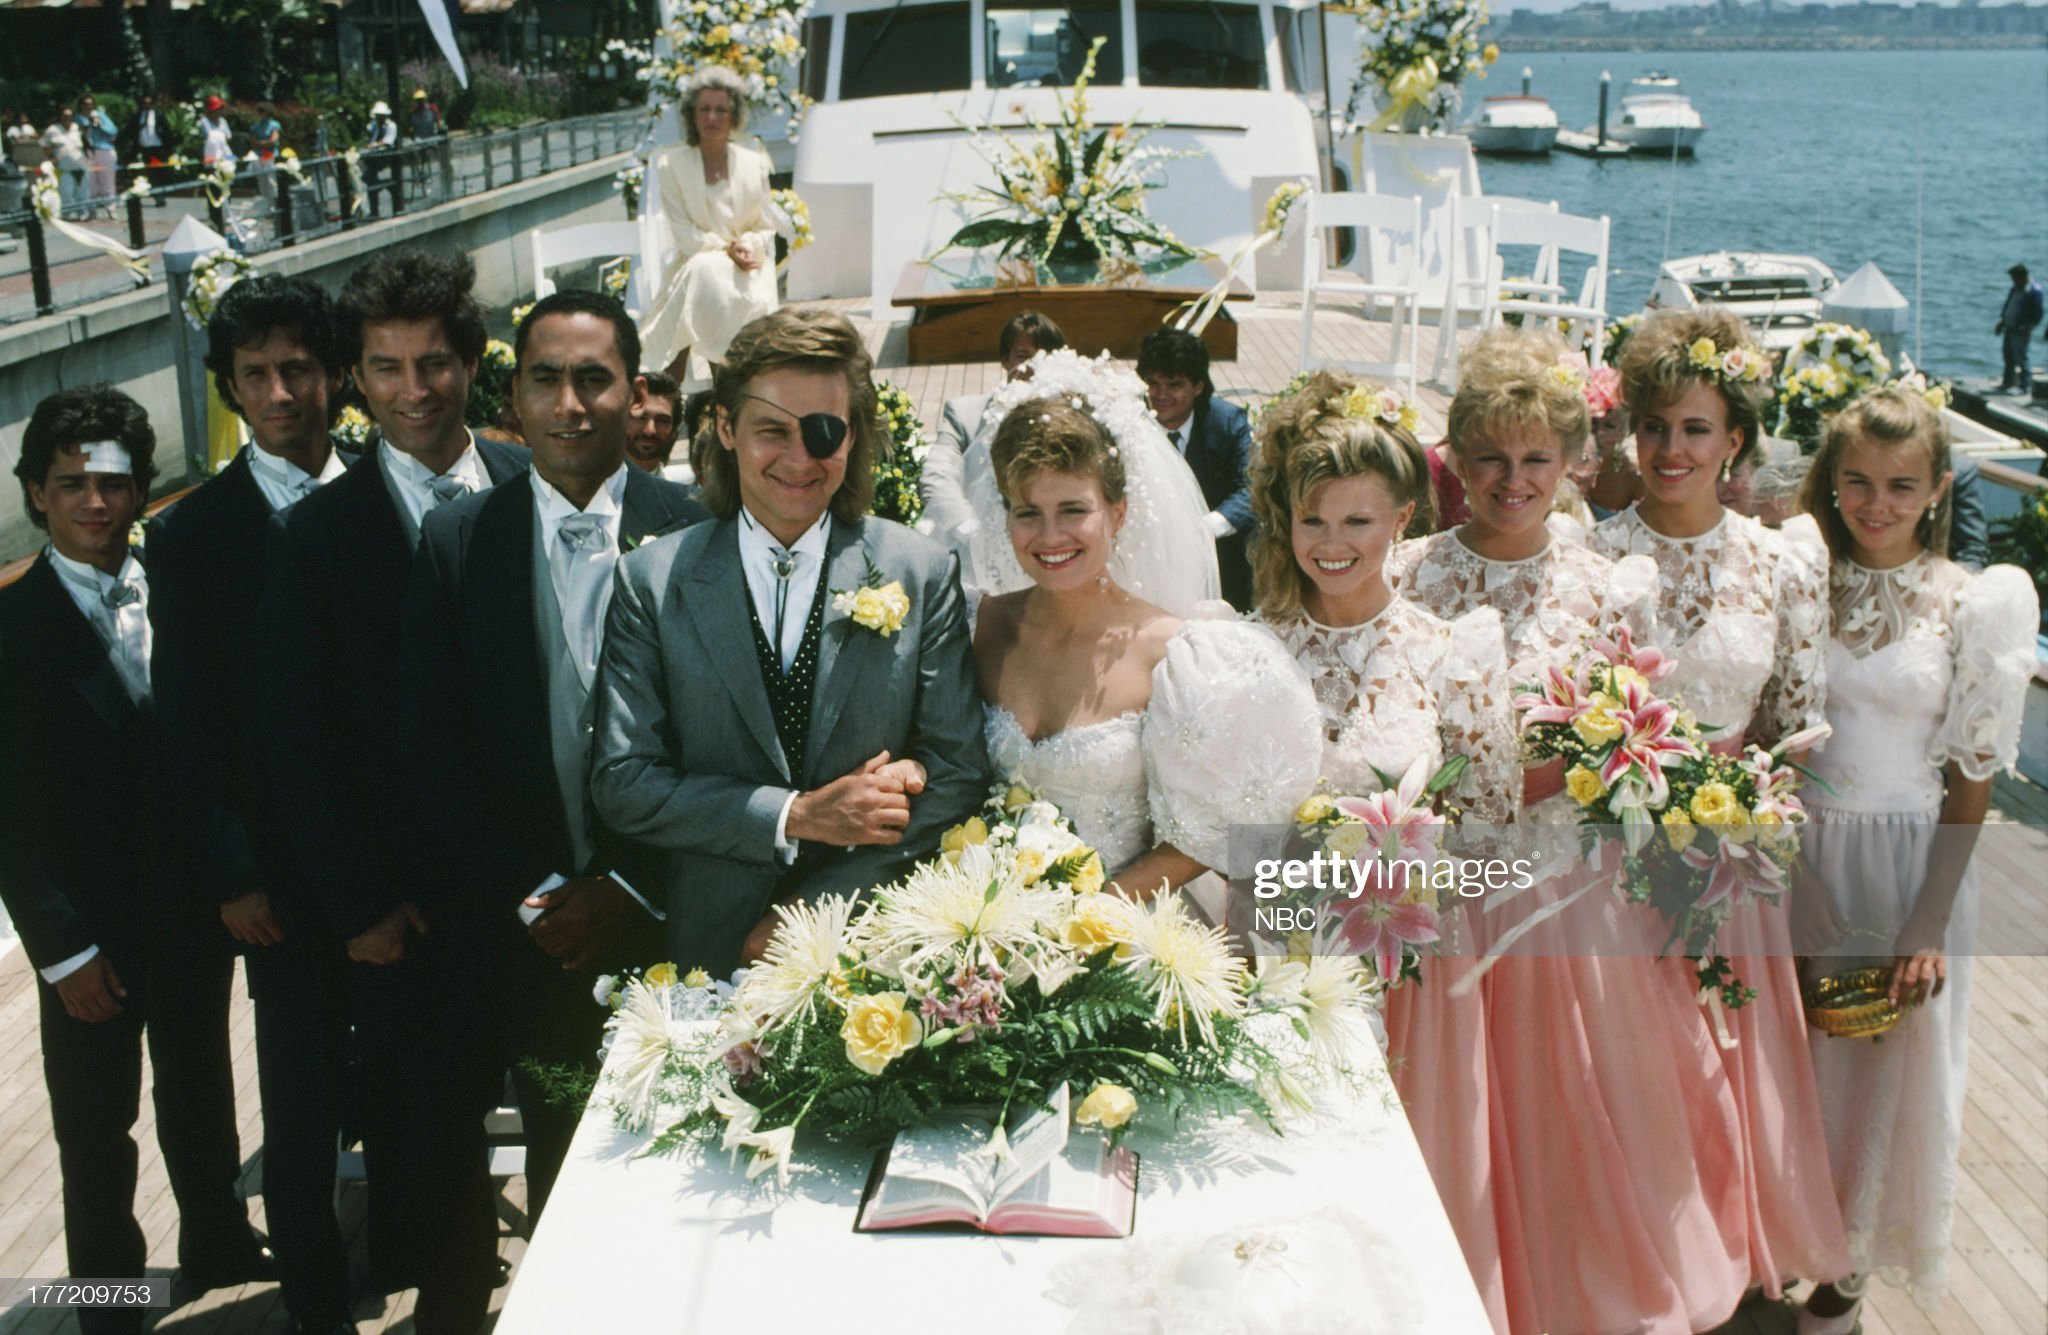 patch-johnson-kayla-brady-1st-wedding-pictured-billy-warlock-as-picture-id177209753